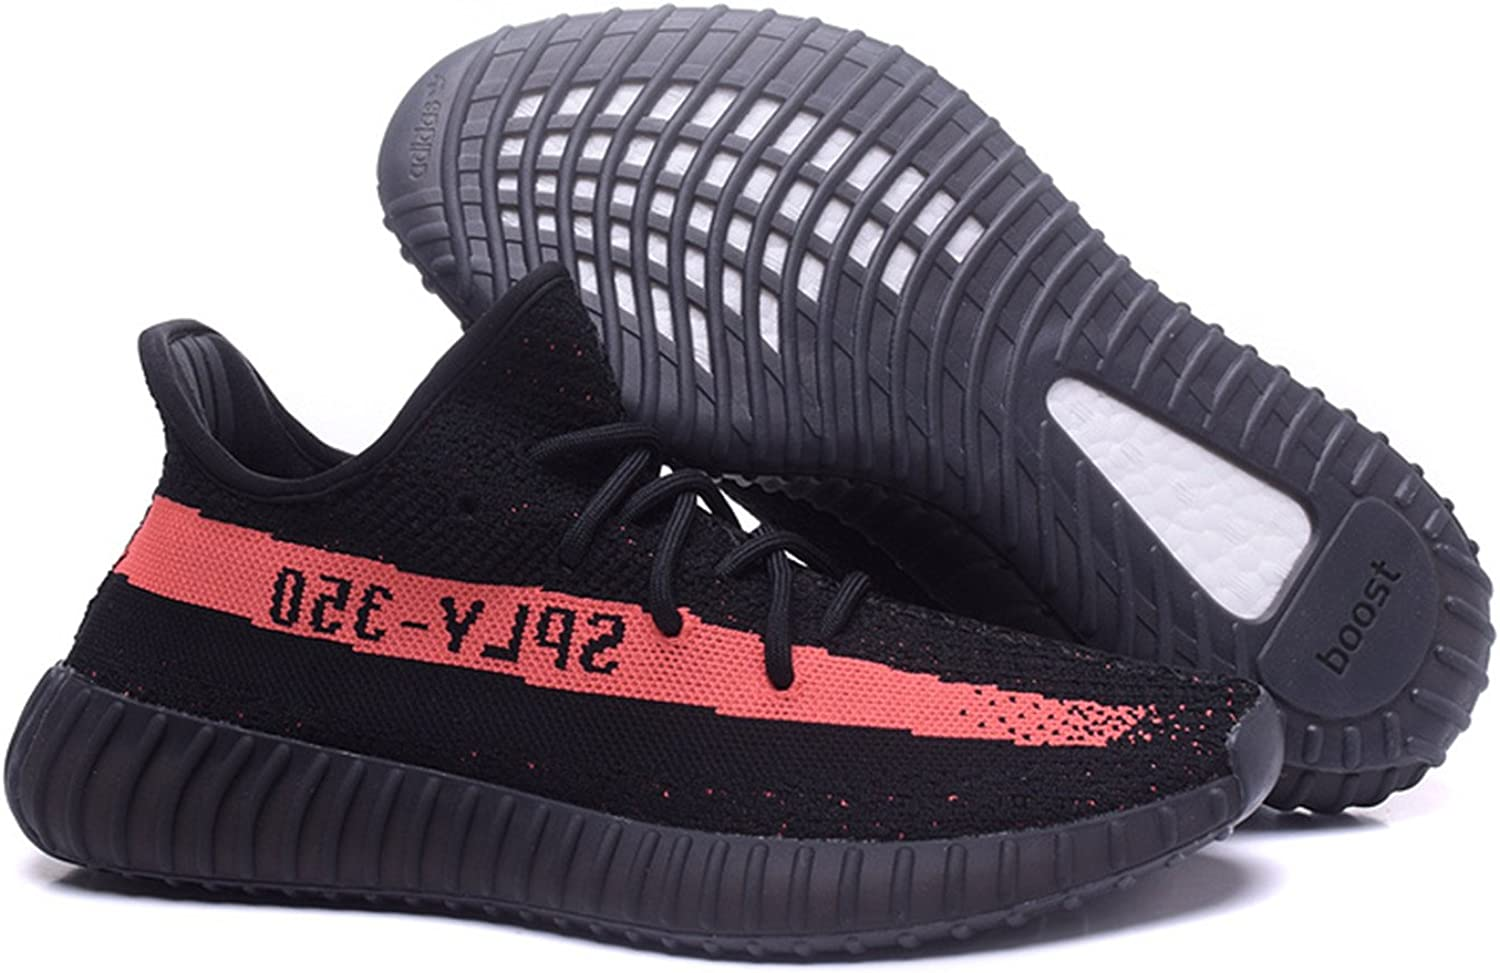 adidas yeezy 350 boost v2 black pink shoes